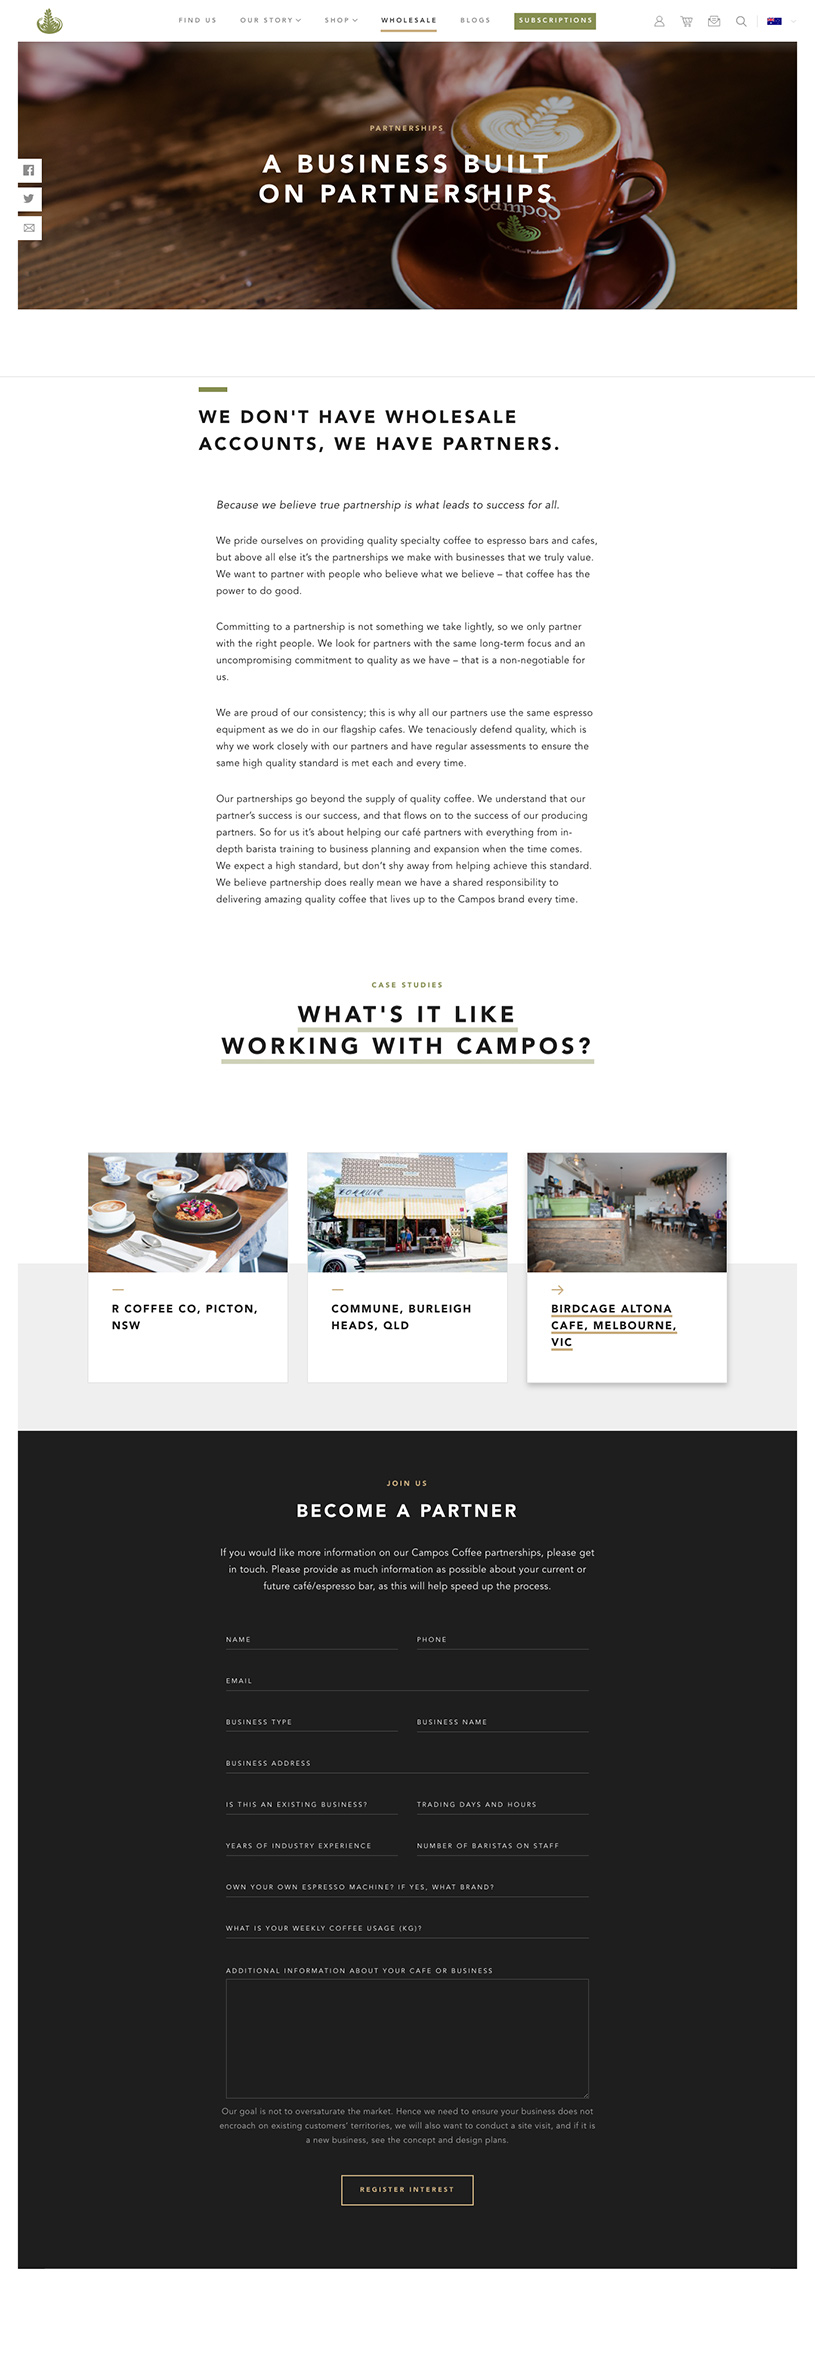 Campos Coffee Wholesale Partner Page